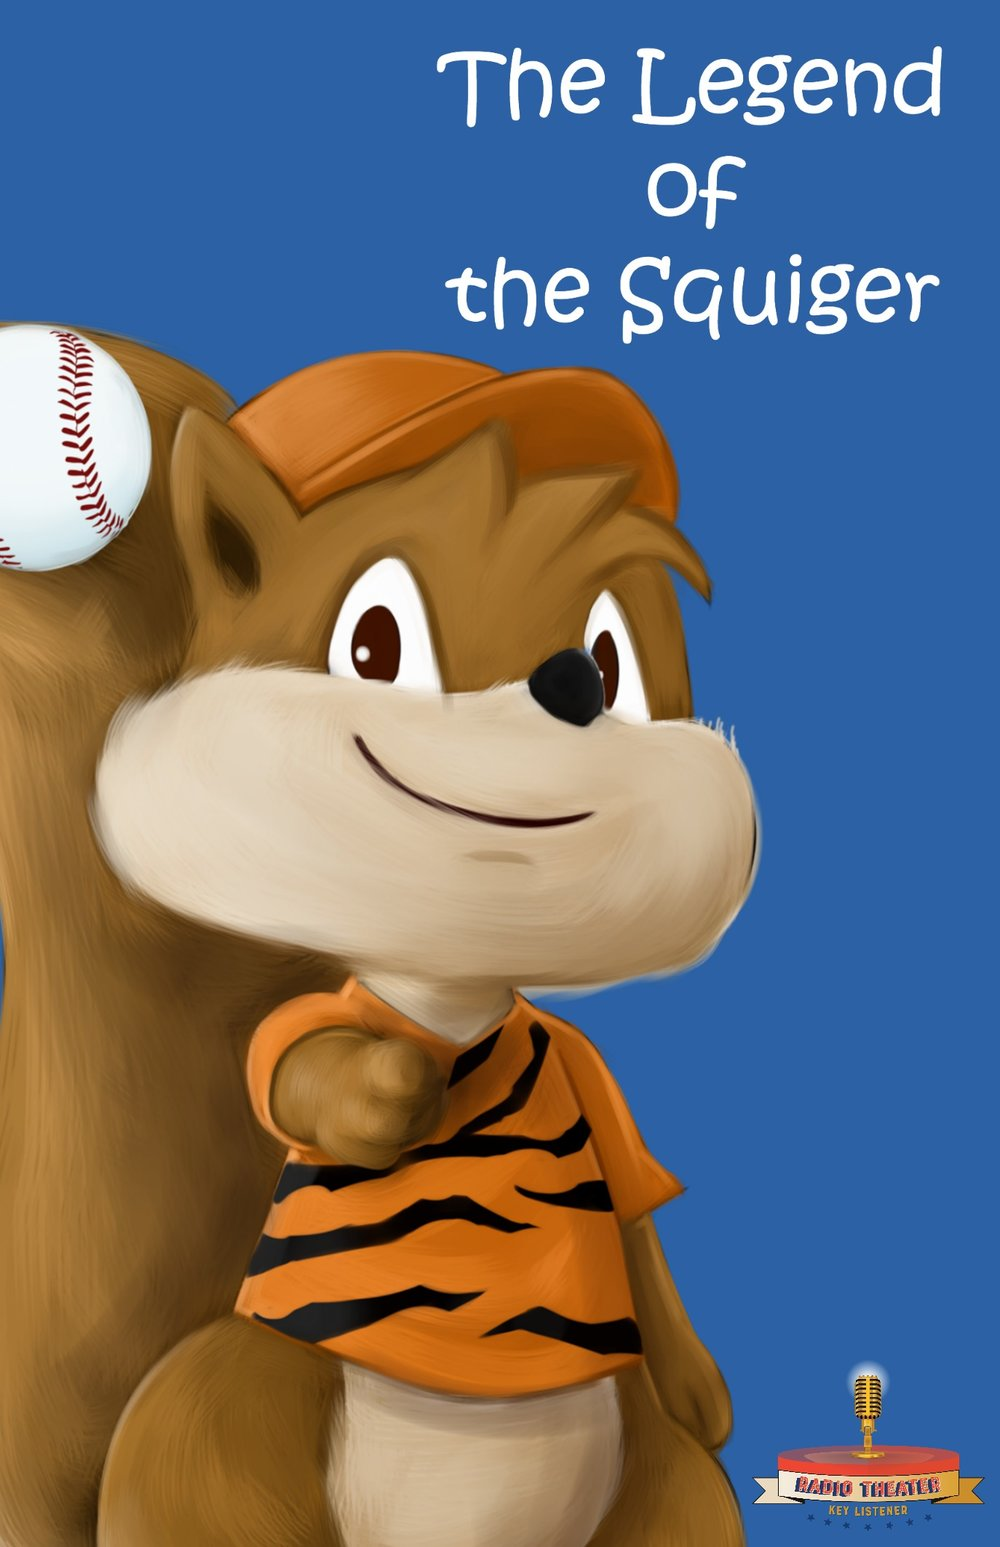 The Legend of the Squiger